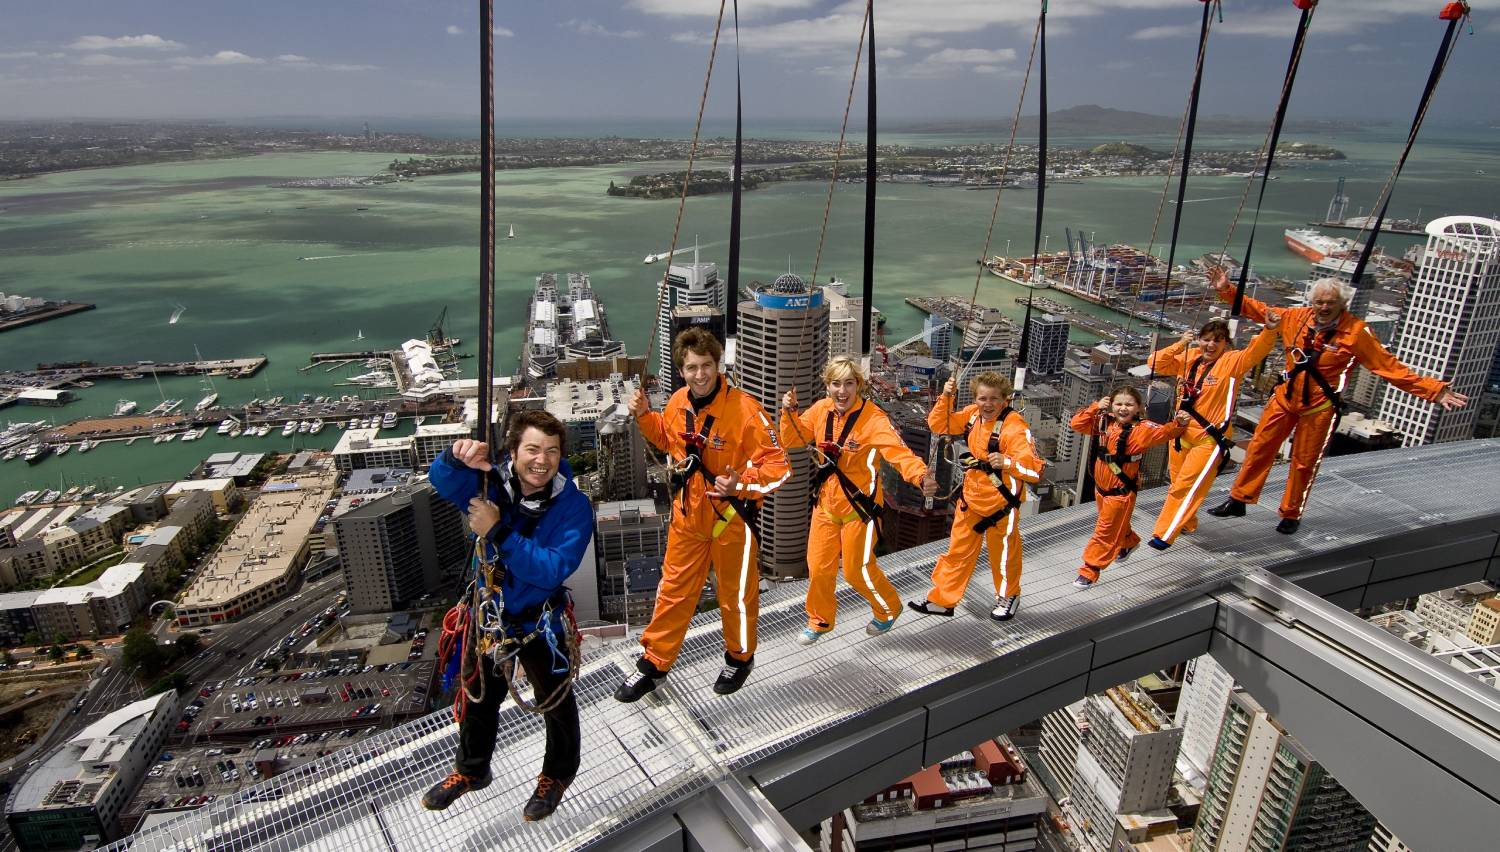 SkyWalk Auckland - Things To Do In Auckland